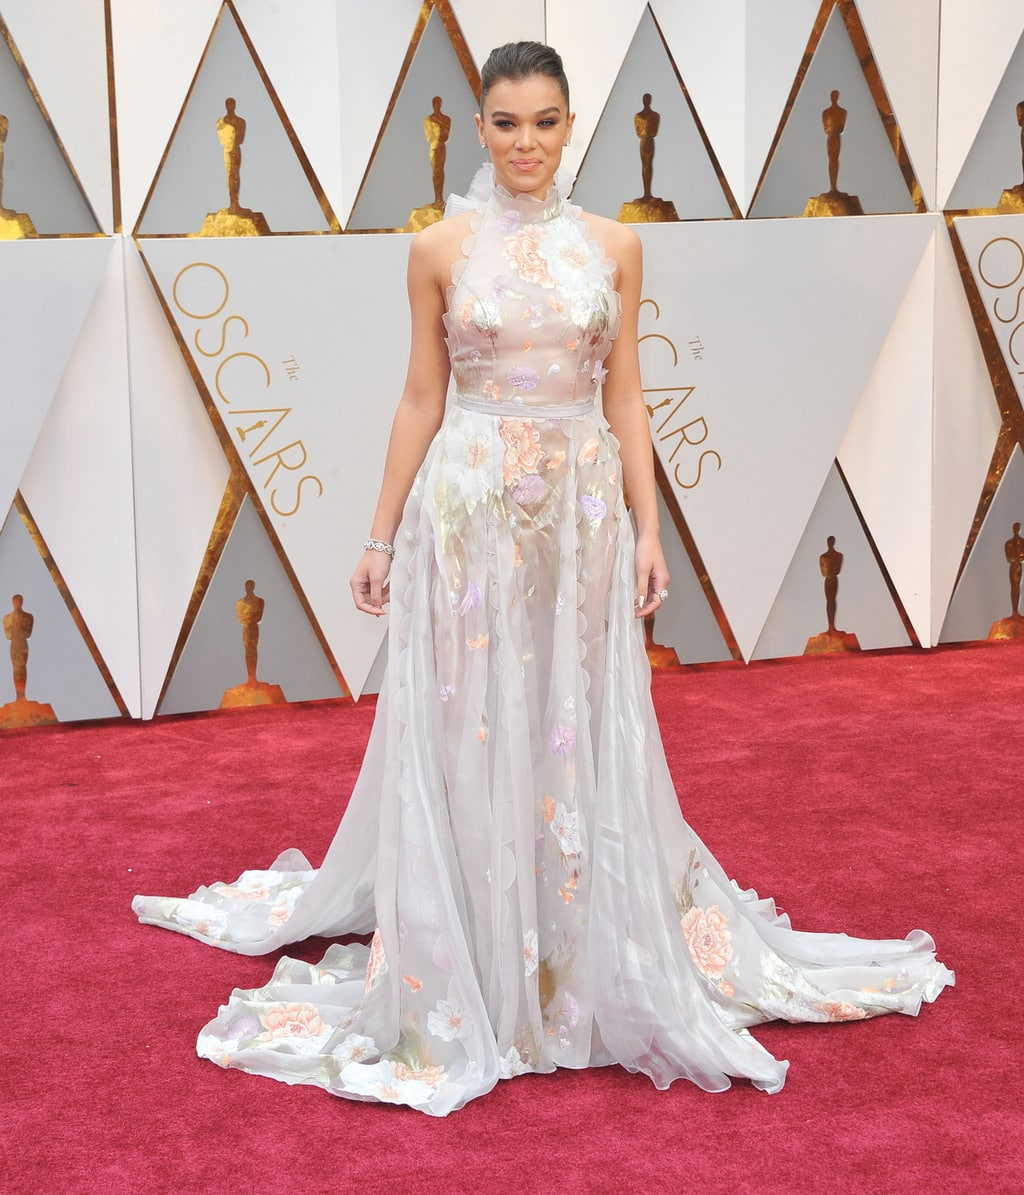 Hailee Steinfeld in Ralph & Russo at the 2017 Oscars